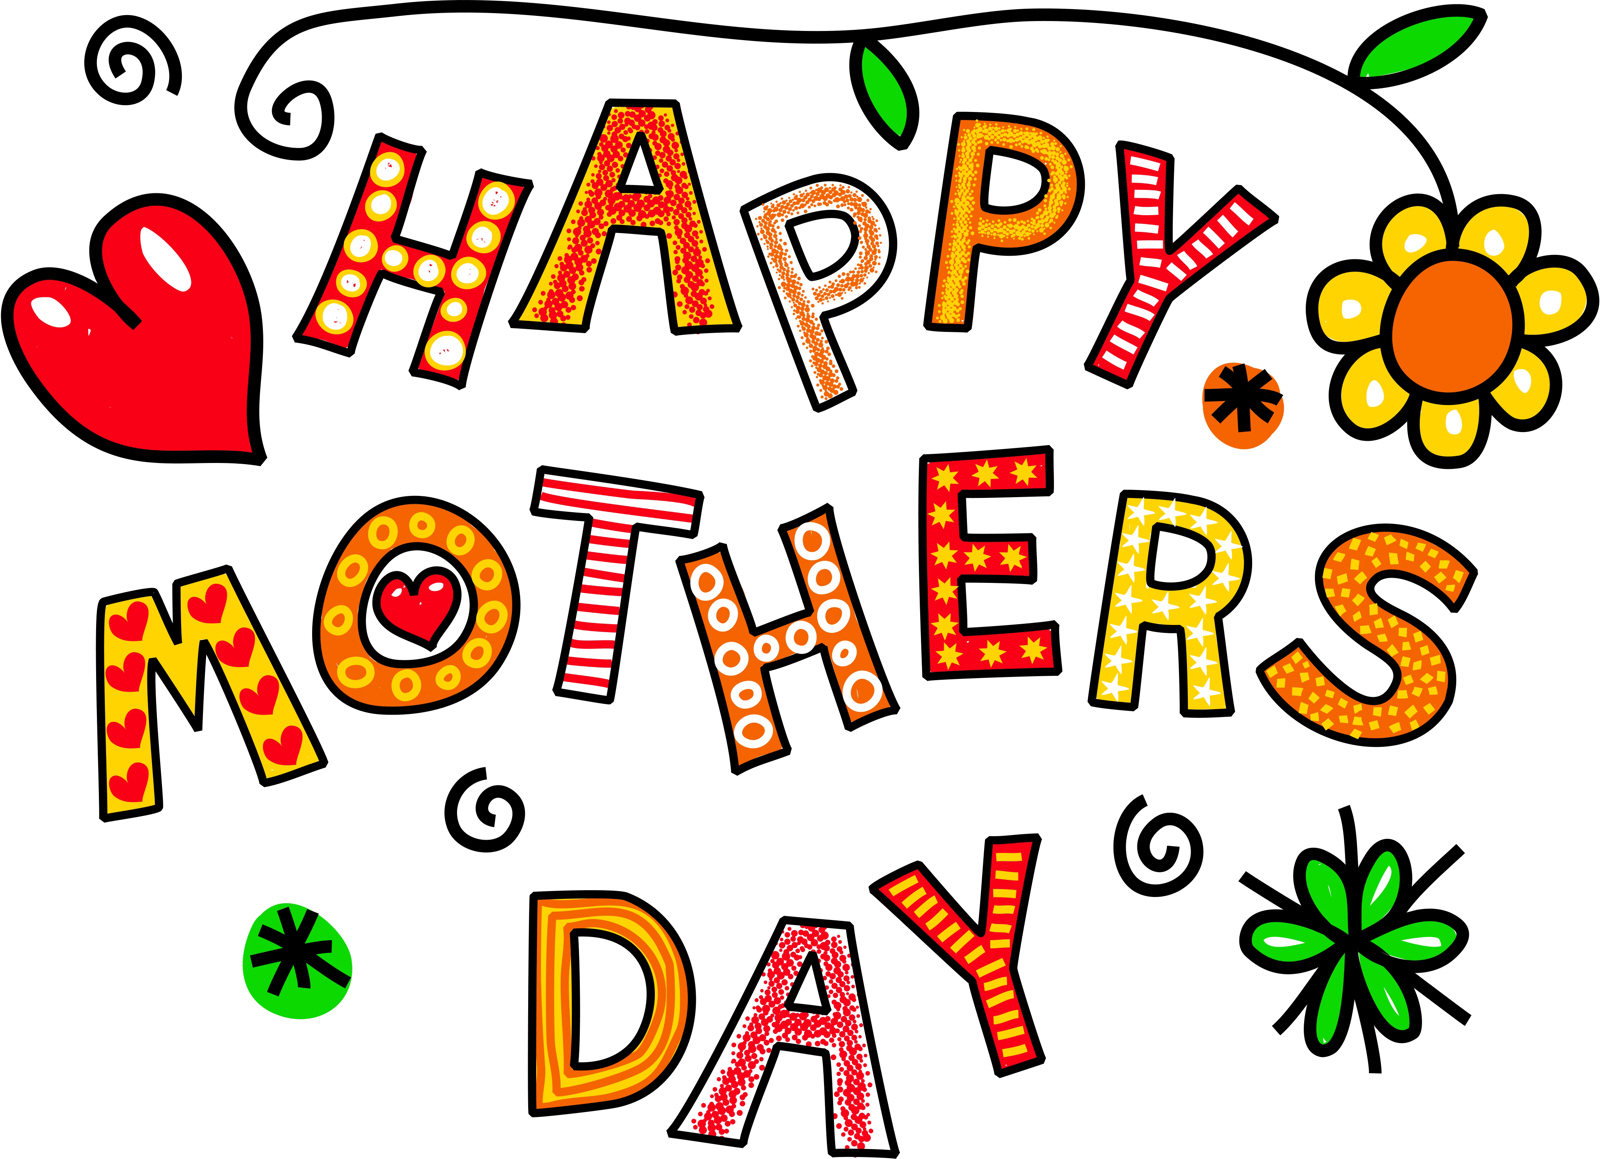 Free stock photo 10312 word art happy mothers day freeimageslive phappy mothers day hand drawn cartoon text greeting kristyandbryce Choice Image